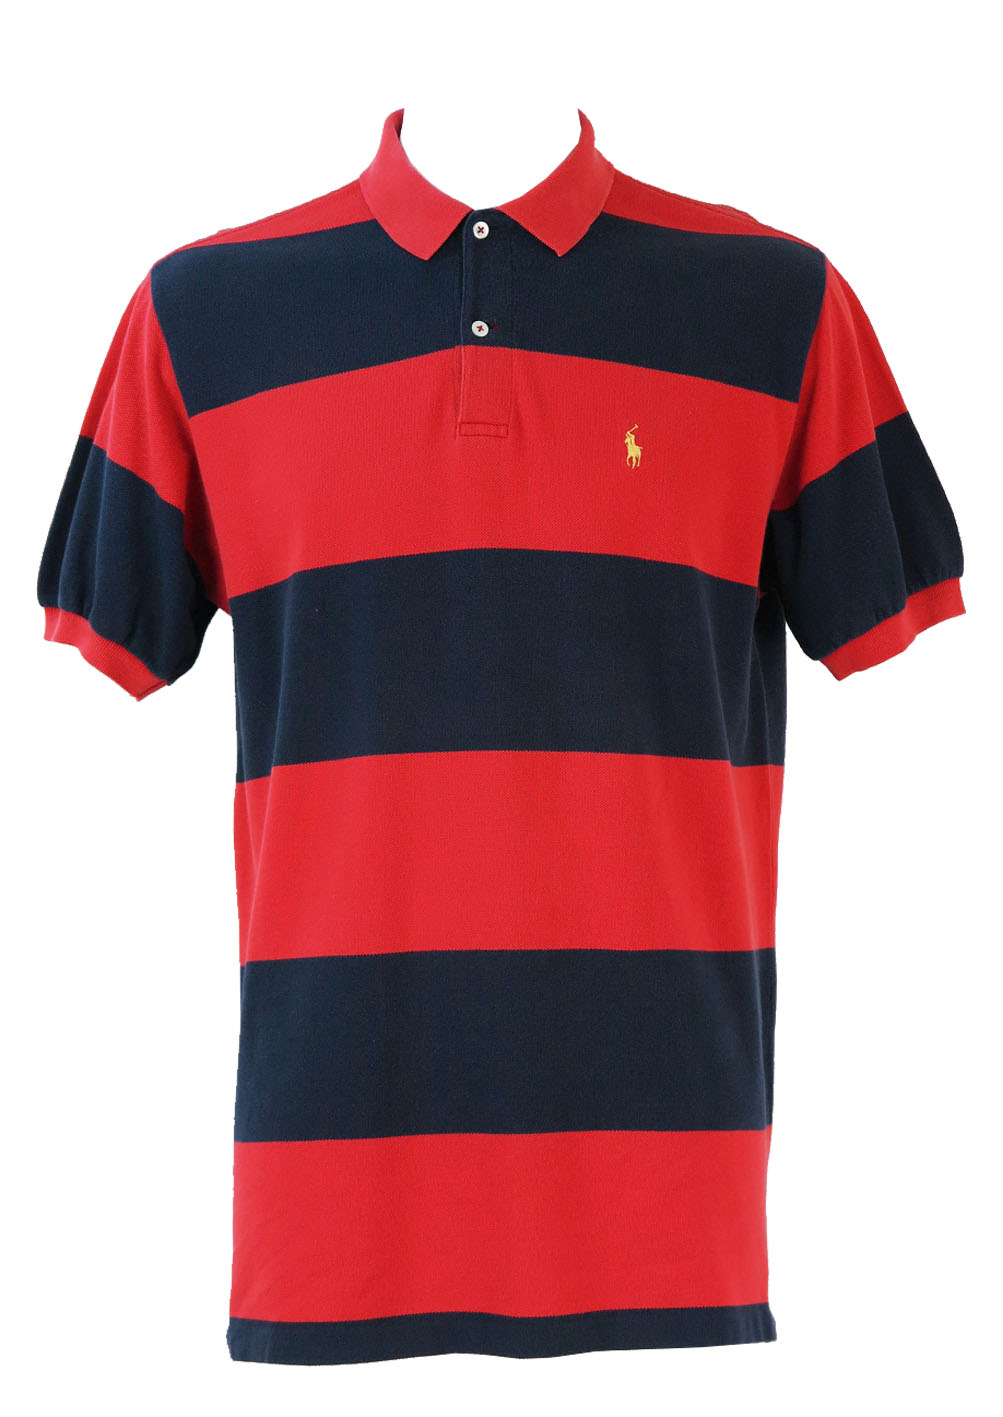 Polo by ralph lauren blue red striped polo shirt l for Red blue striped shirt